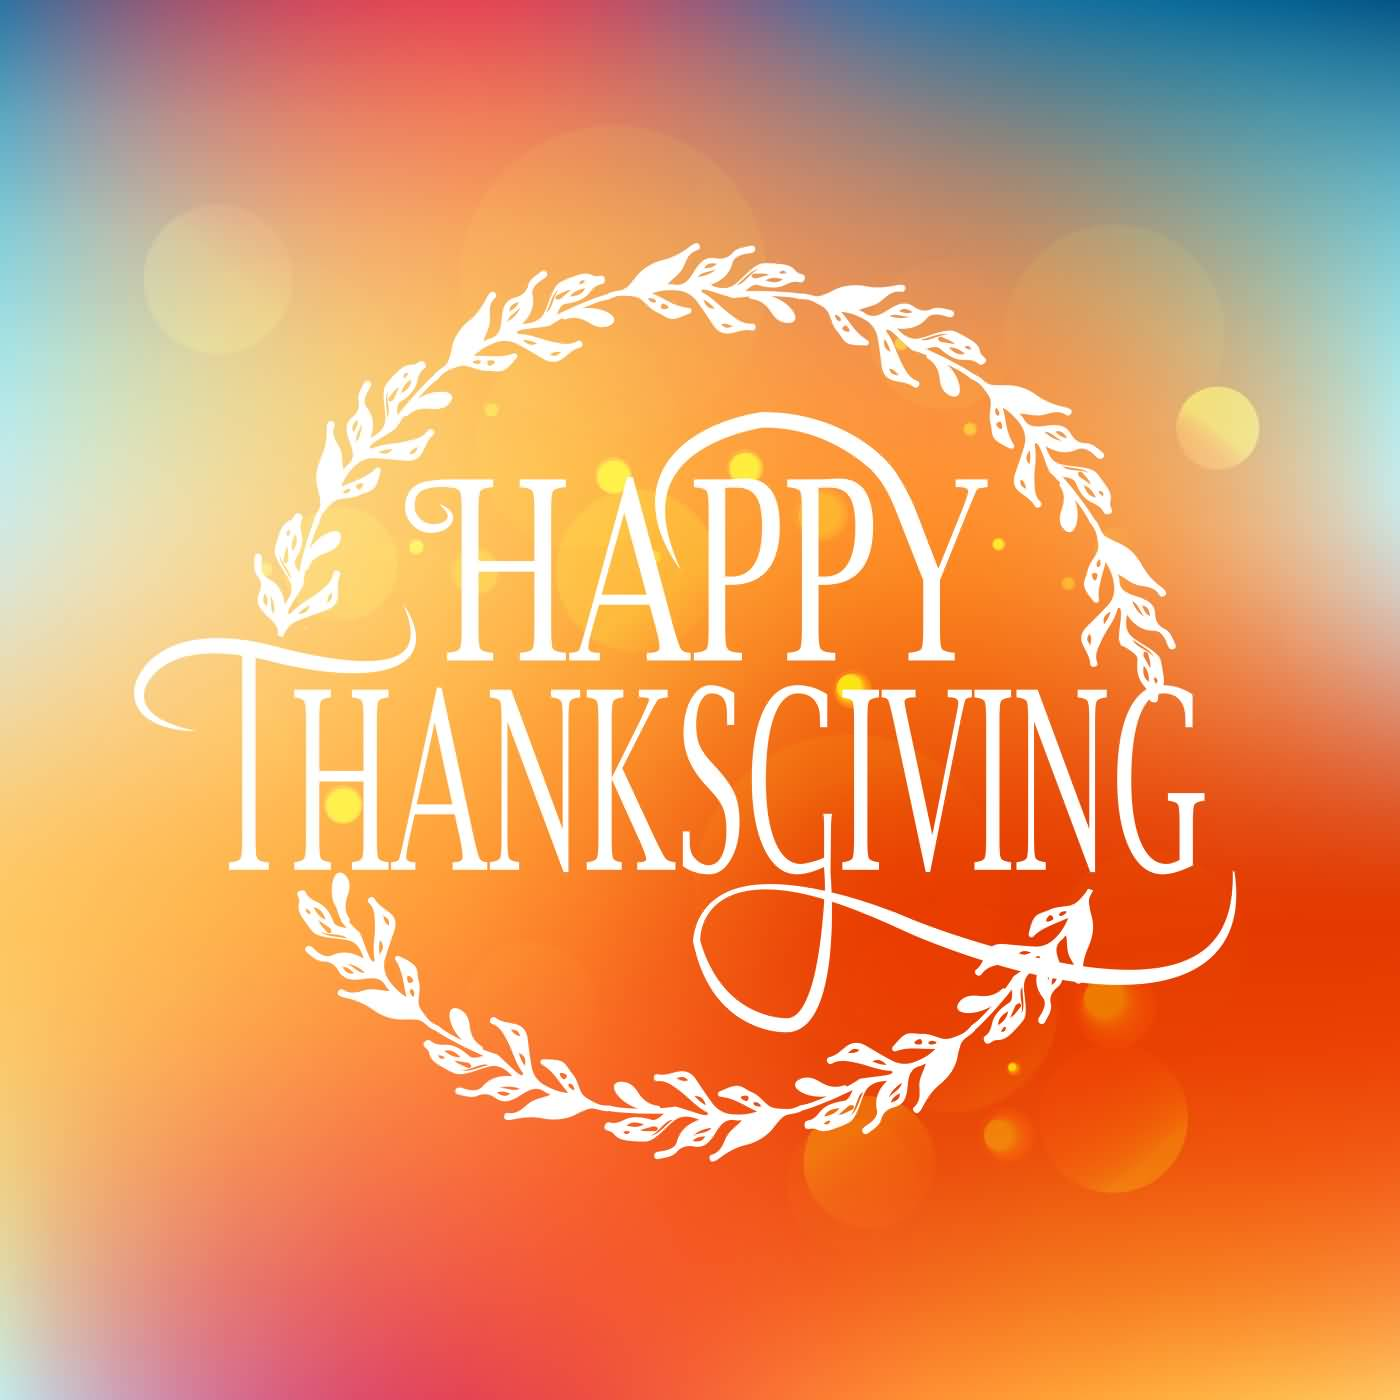 Animated Love Couple Wallpapers 70 Happy Thanksgiving 2017 Greeting Pictures And Images